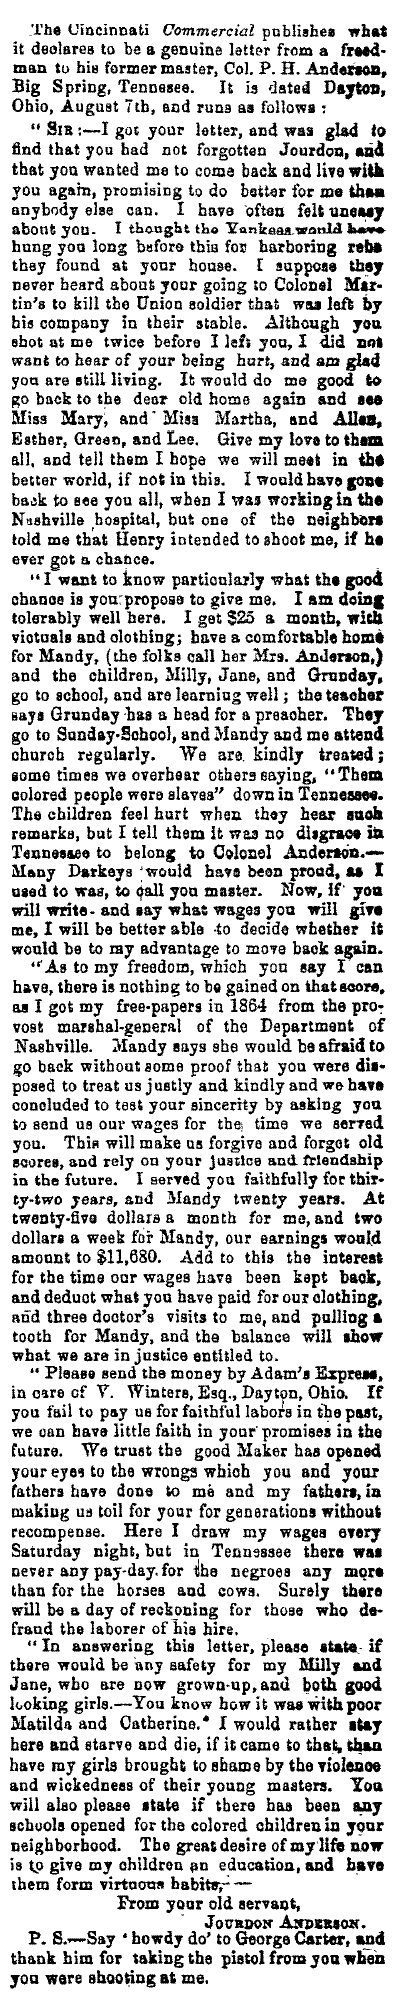 Letter from Jourdon Anderson to Colonel PH Anderson newspaper print